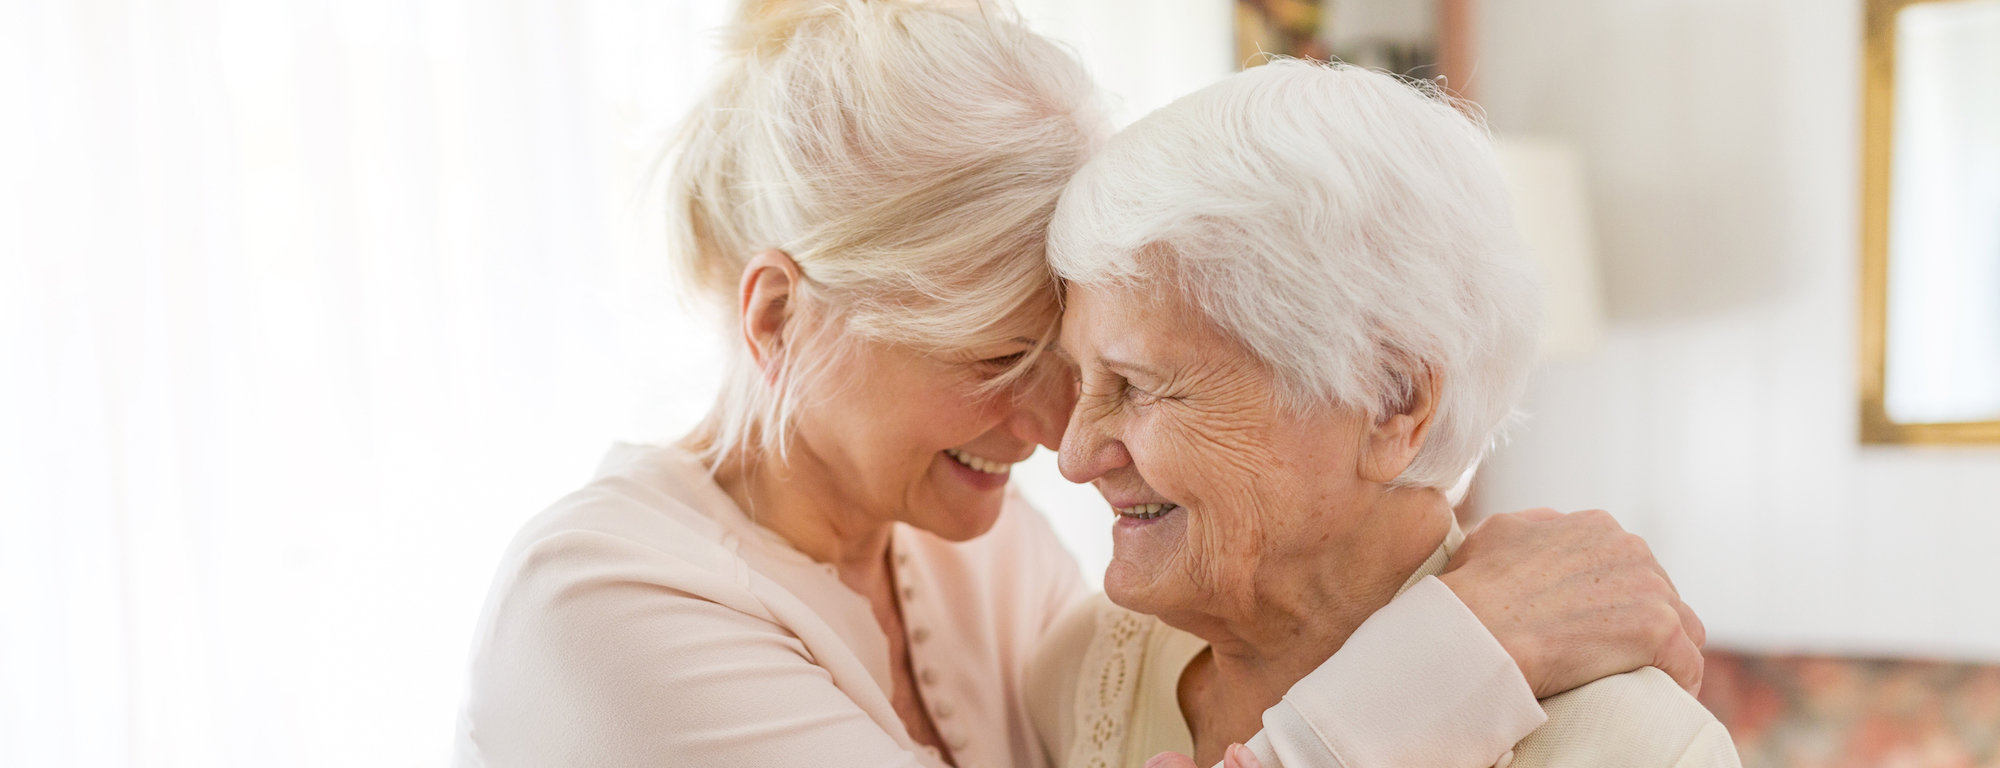 How Family Caregivers Can Provide the Highest Quality of Care [Free Resource]